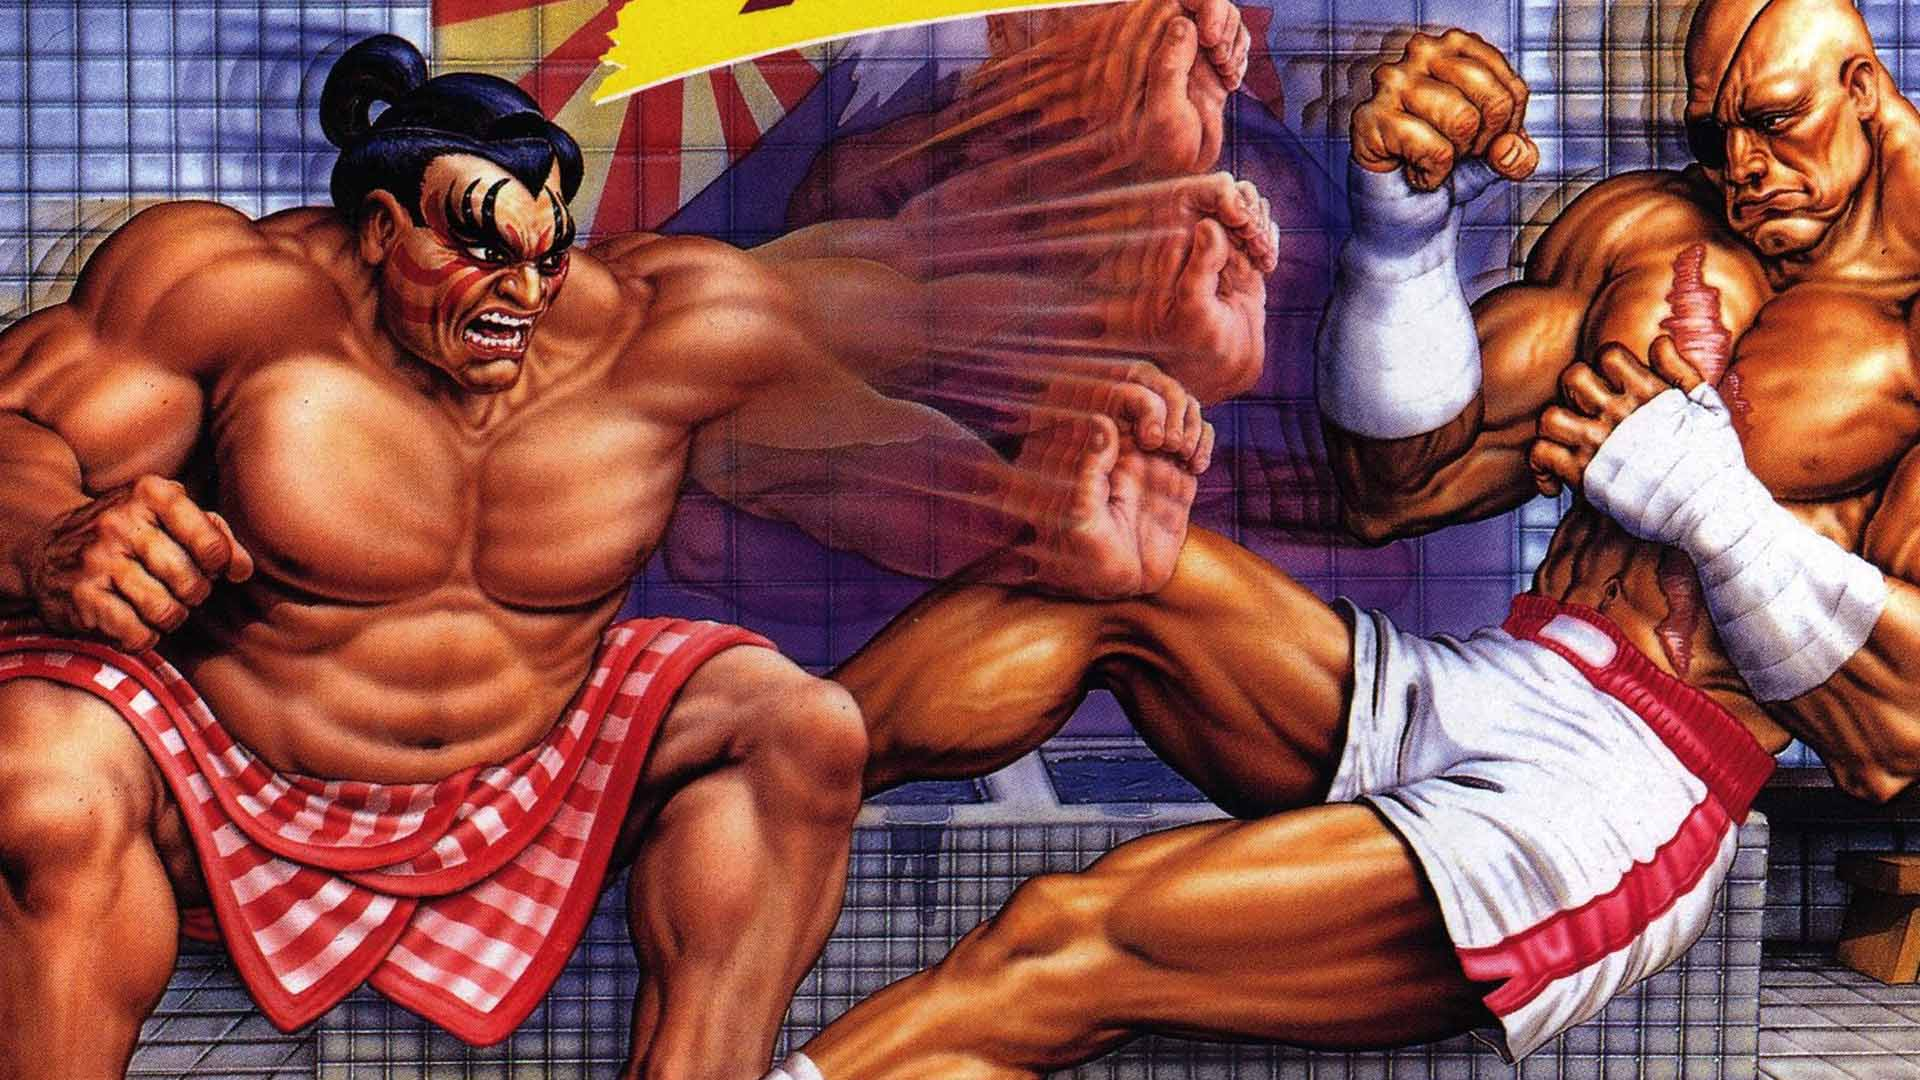 Super September Street Fighter Ii Turbo S Fighting Spirit Burns Bright To This Day Nintendo Wire